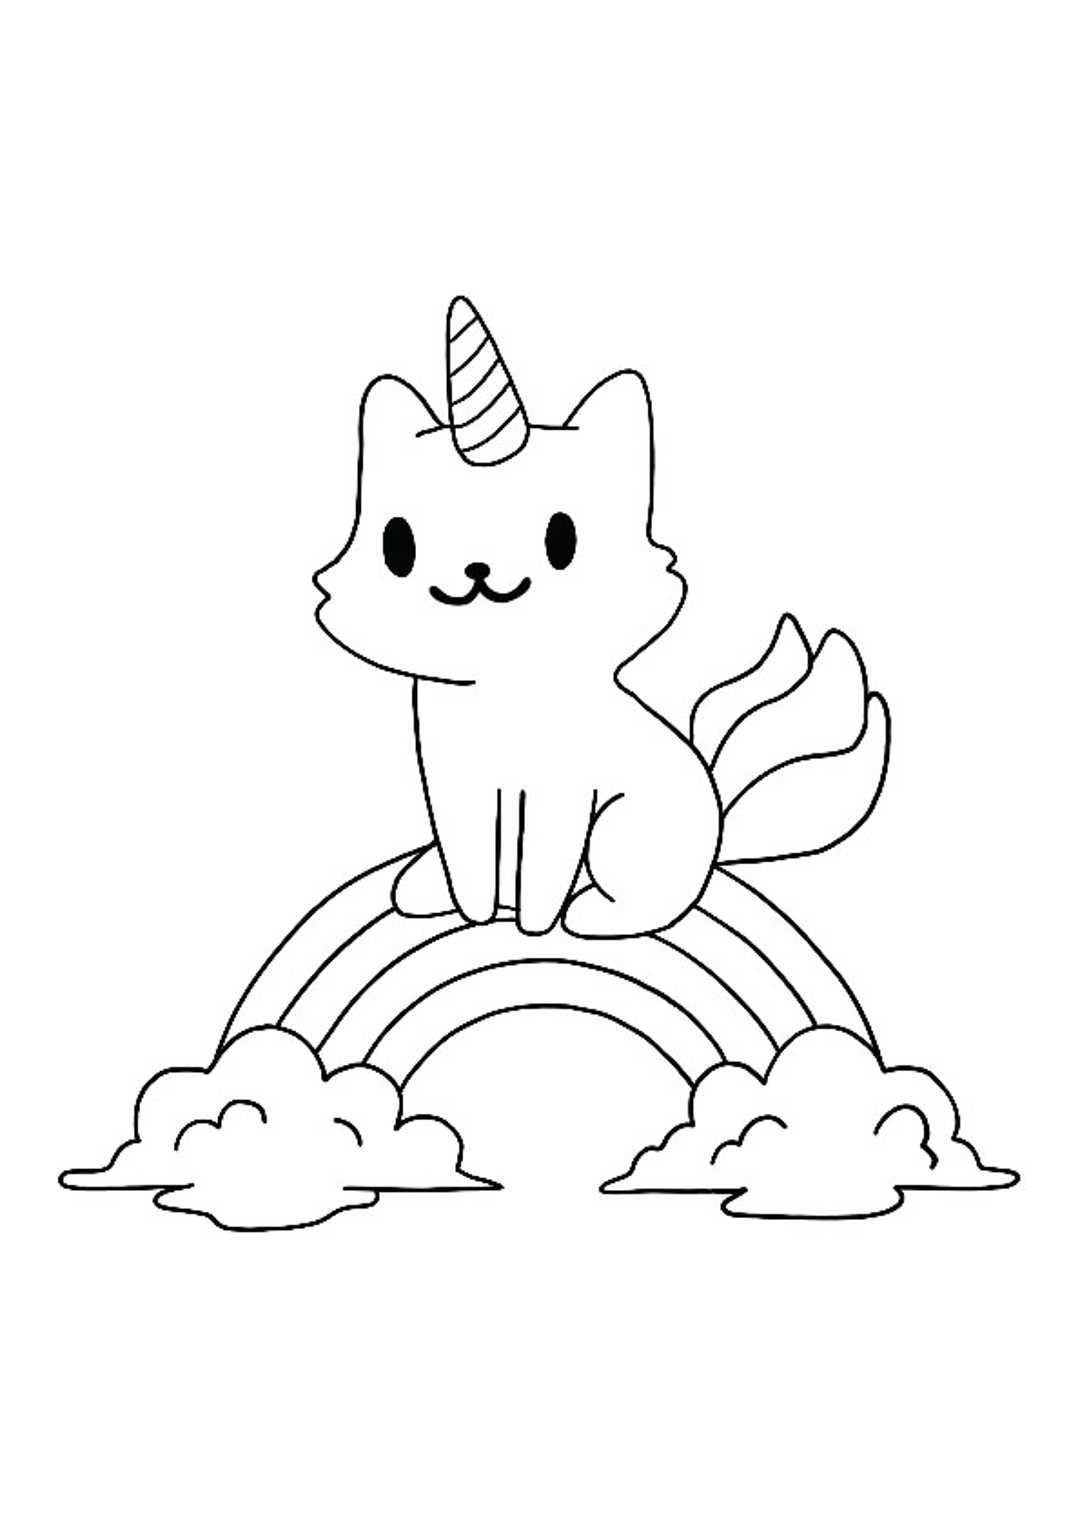 Free Beanie Boo Coloring Pages Download Print Cats Dogs And Unicorns Bear Coloring Pages Teddy Bear Coloring Pages Dog Coloring Page